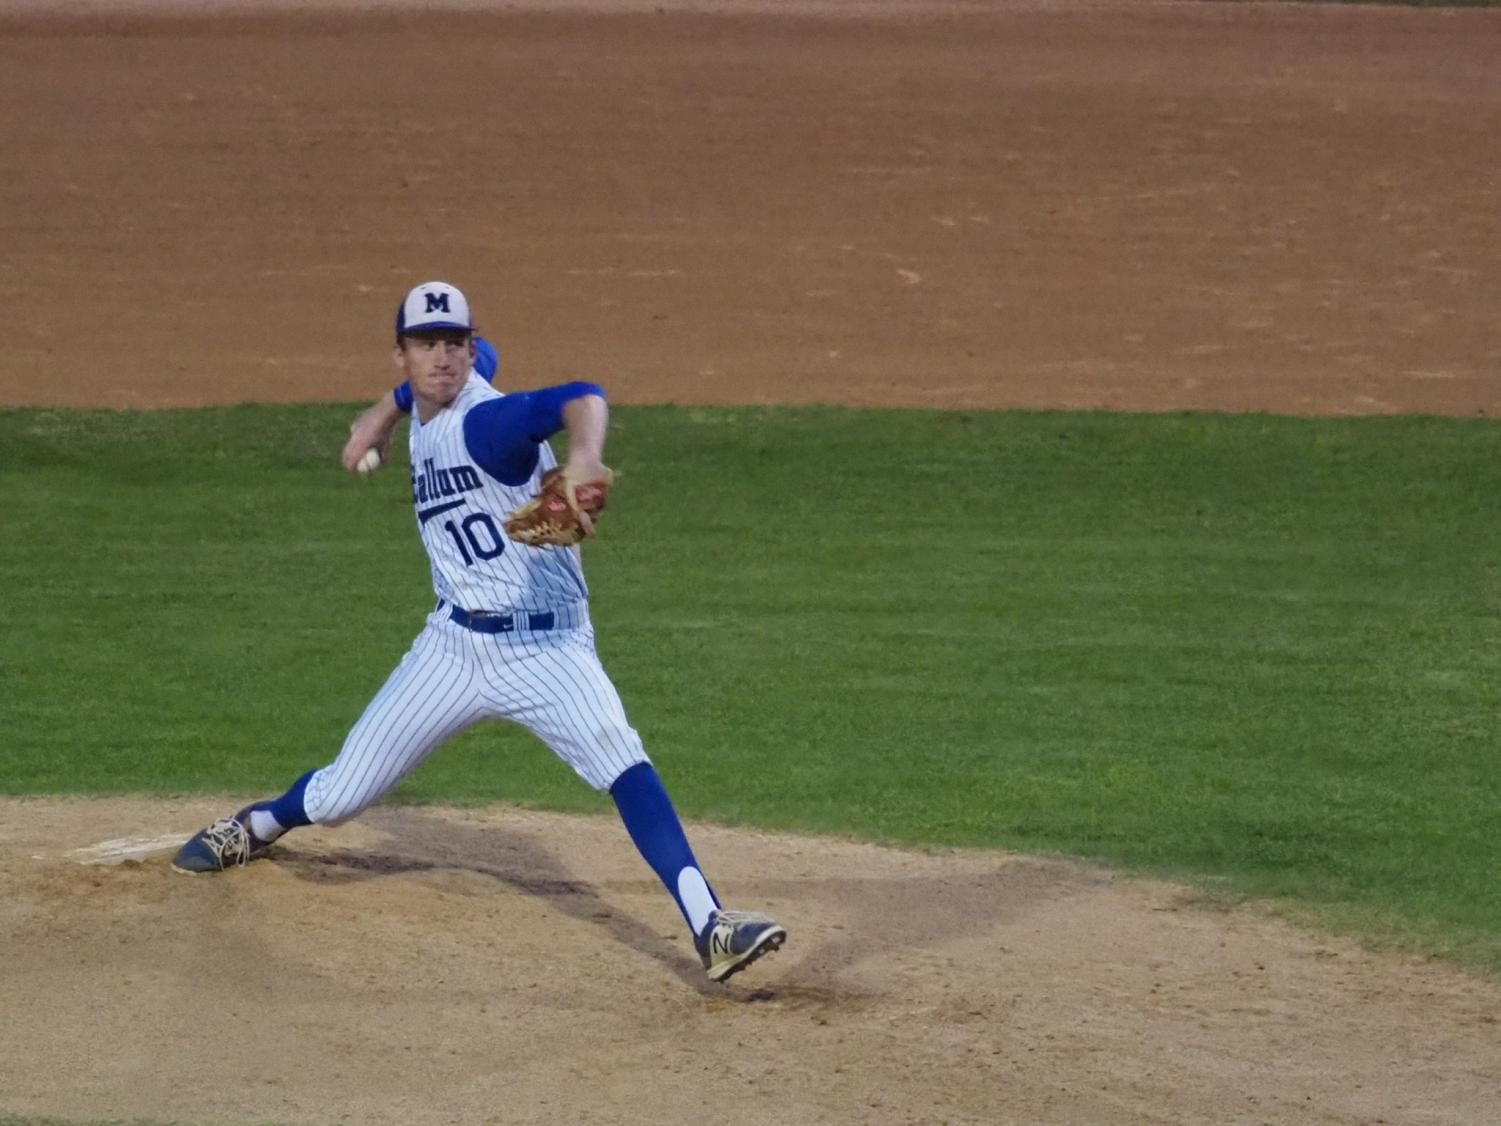 Mason Bryant had an effective outing in Game 1 of the series against Austin High, pitching 4 2/3 innings and striking out 11. McCallum won Game 1 of two-game series, 8-2. Photo by Gregory James.